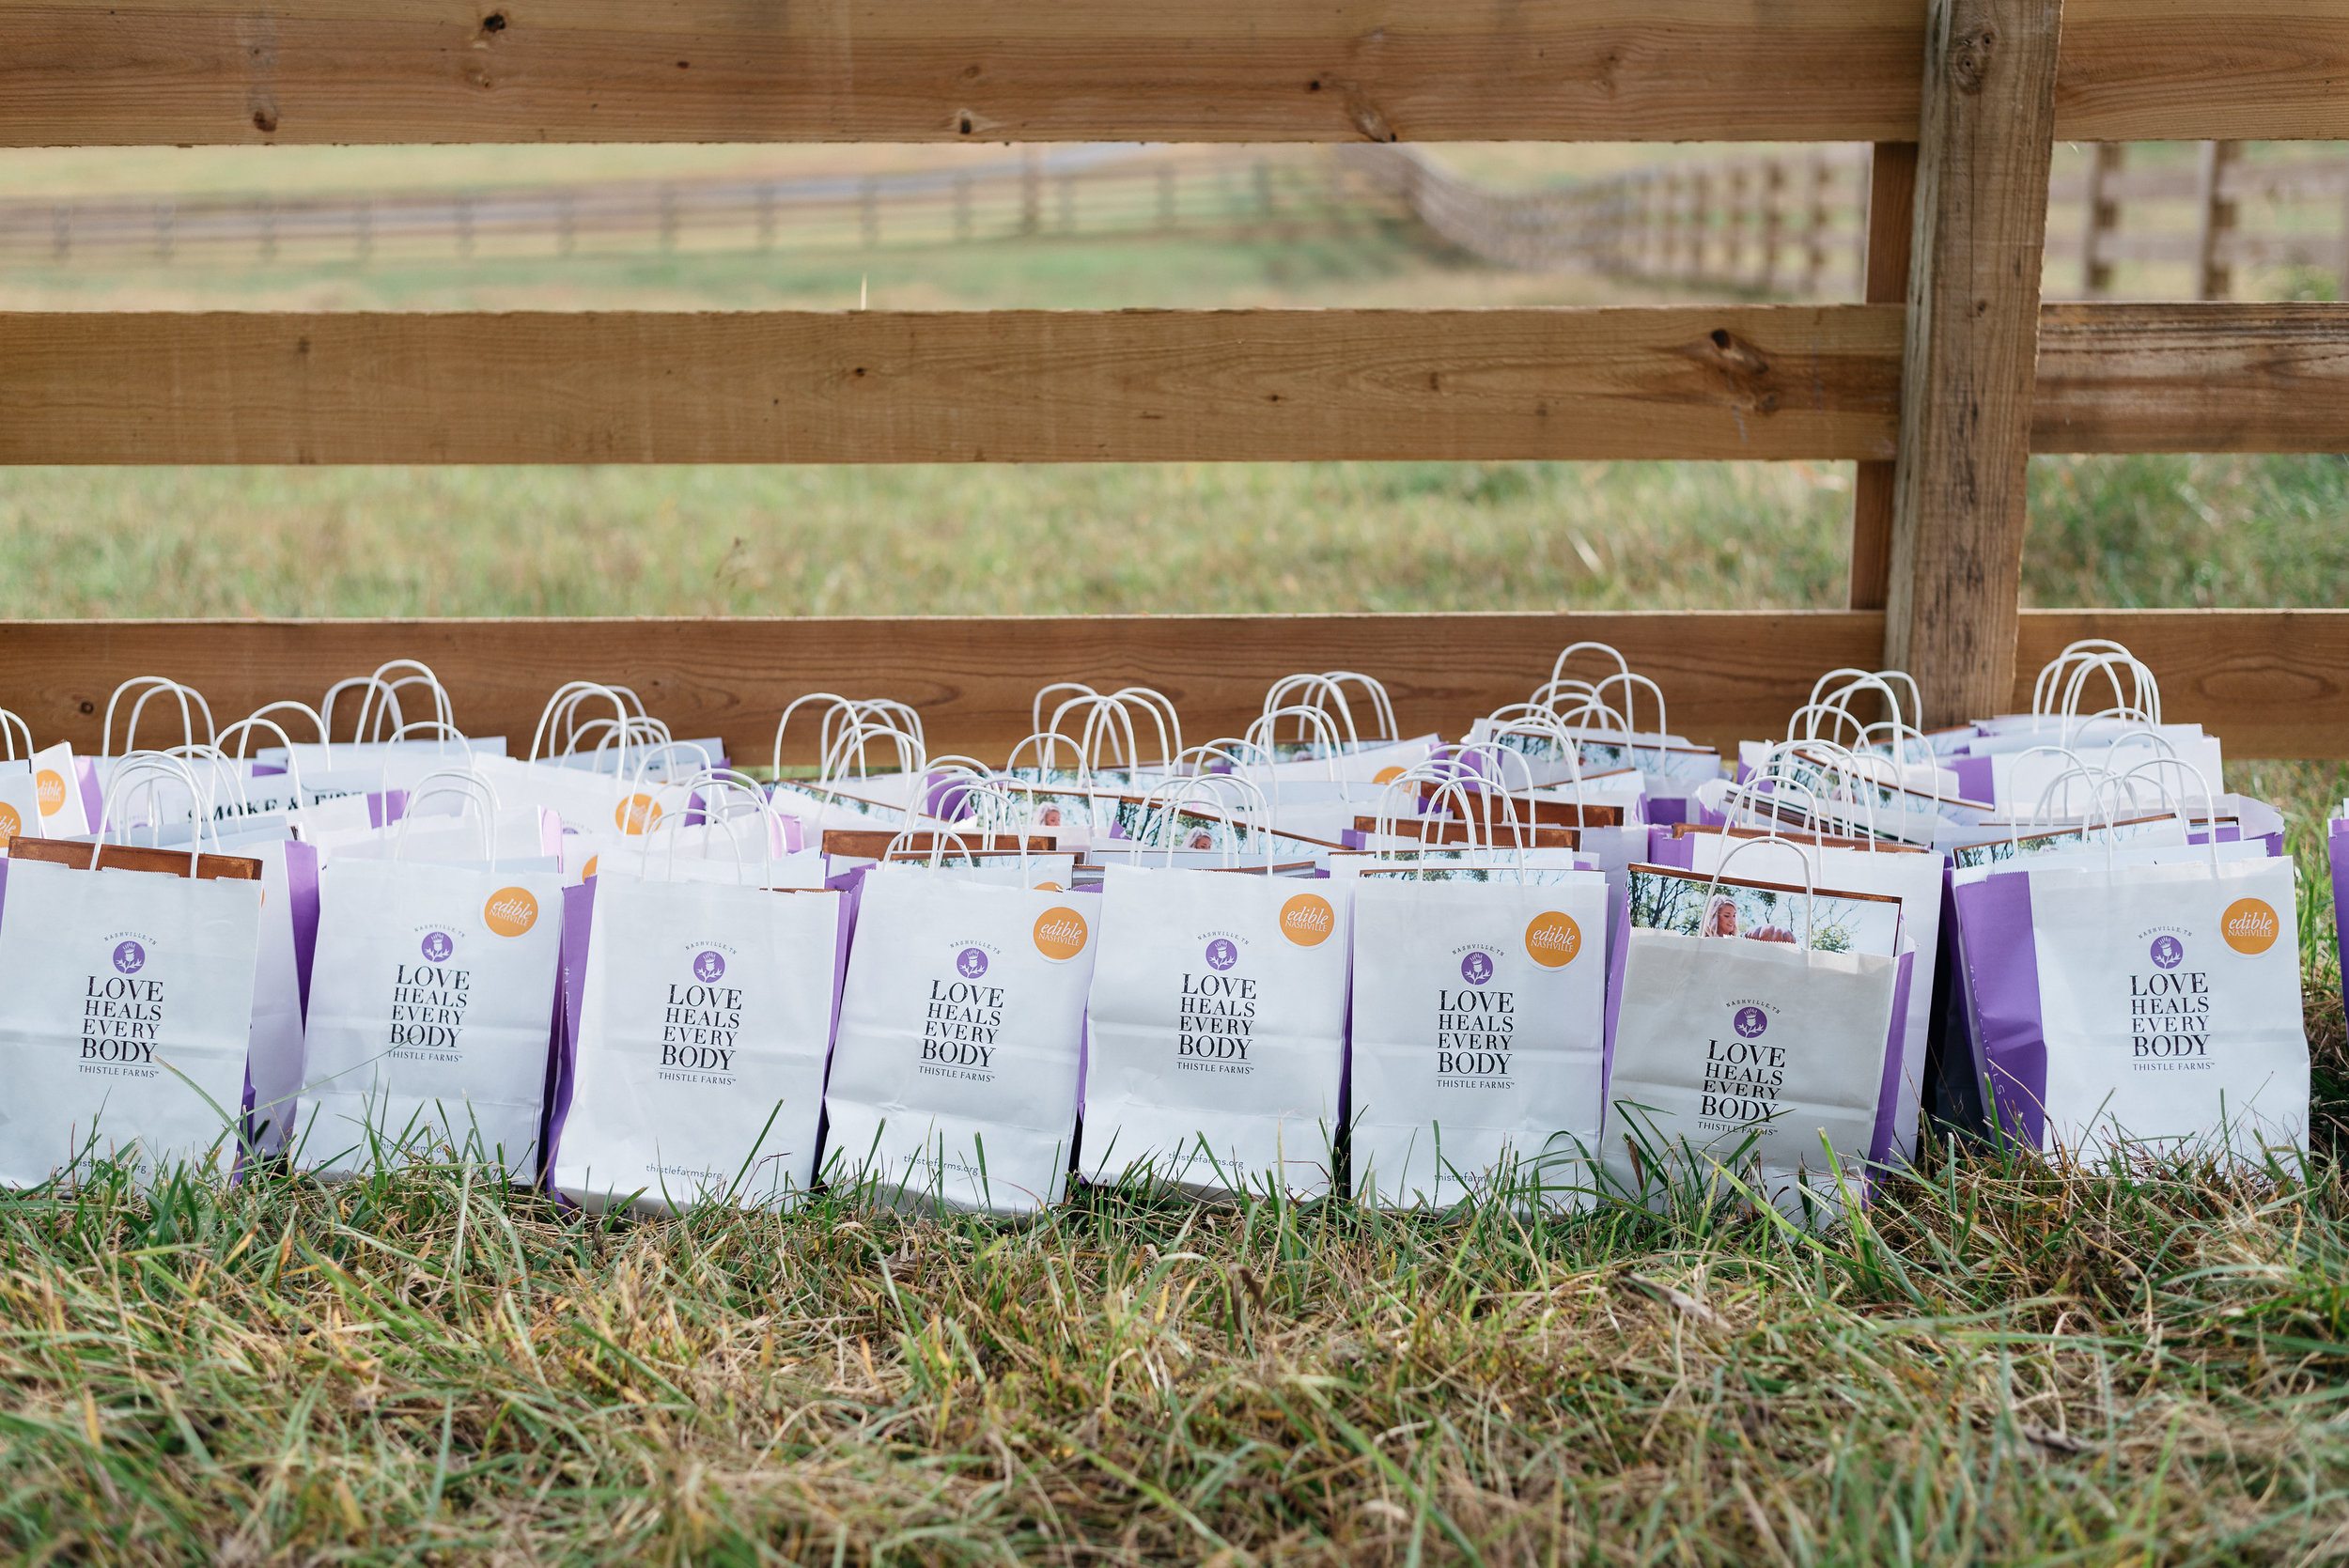 goodie-bags-edible-farm-dinner-jiosa-37.jpg